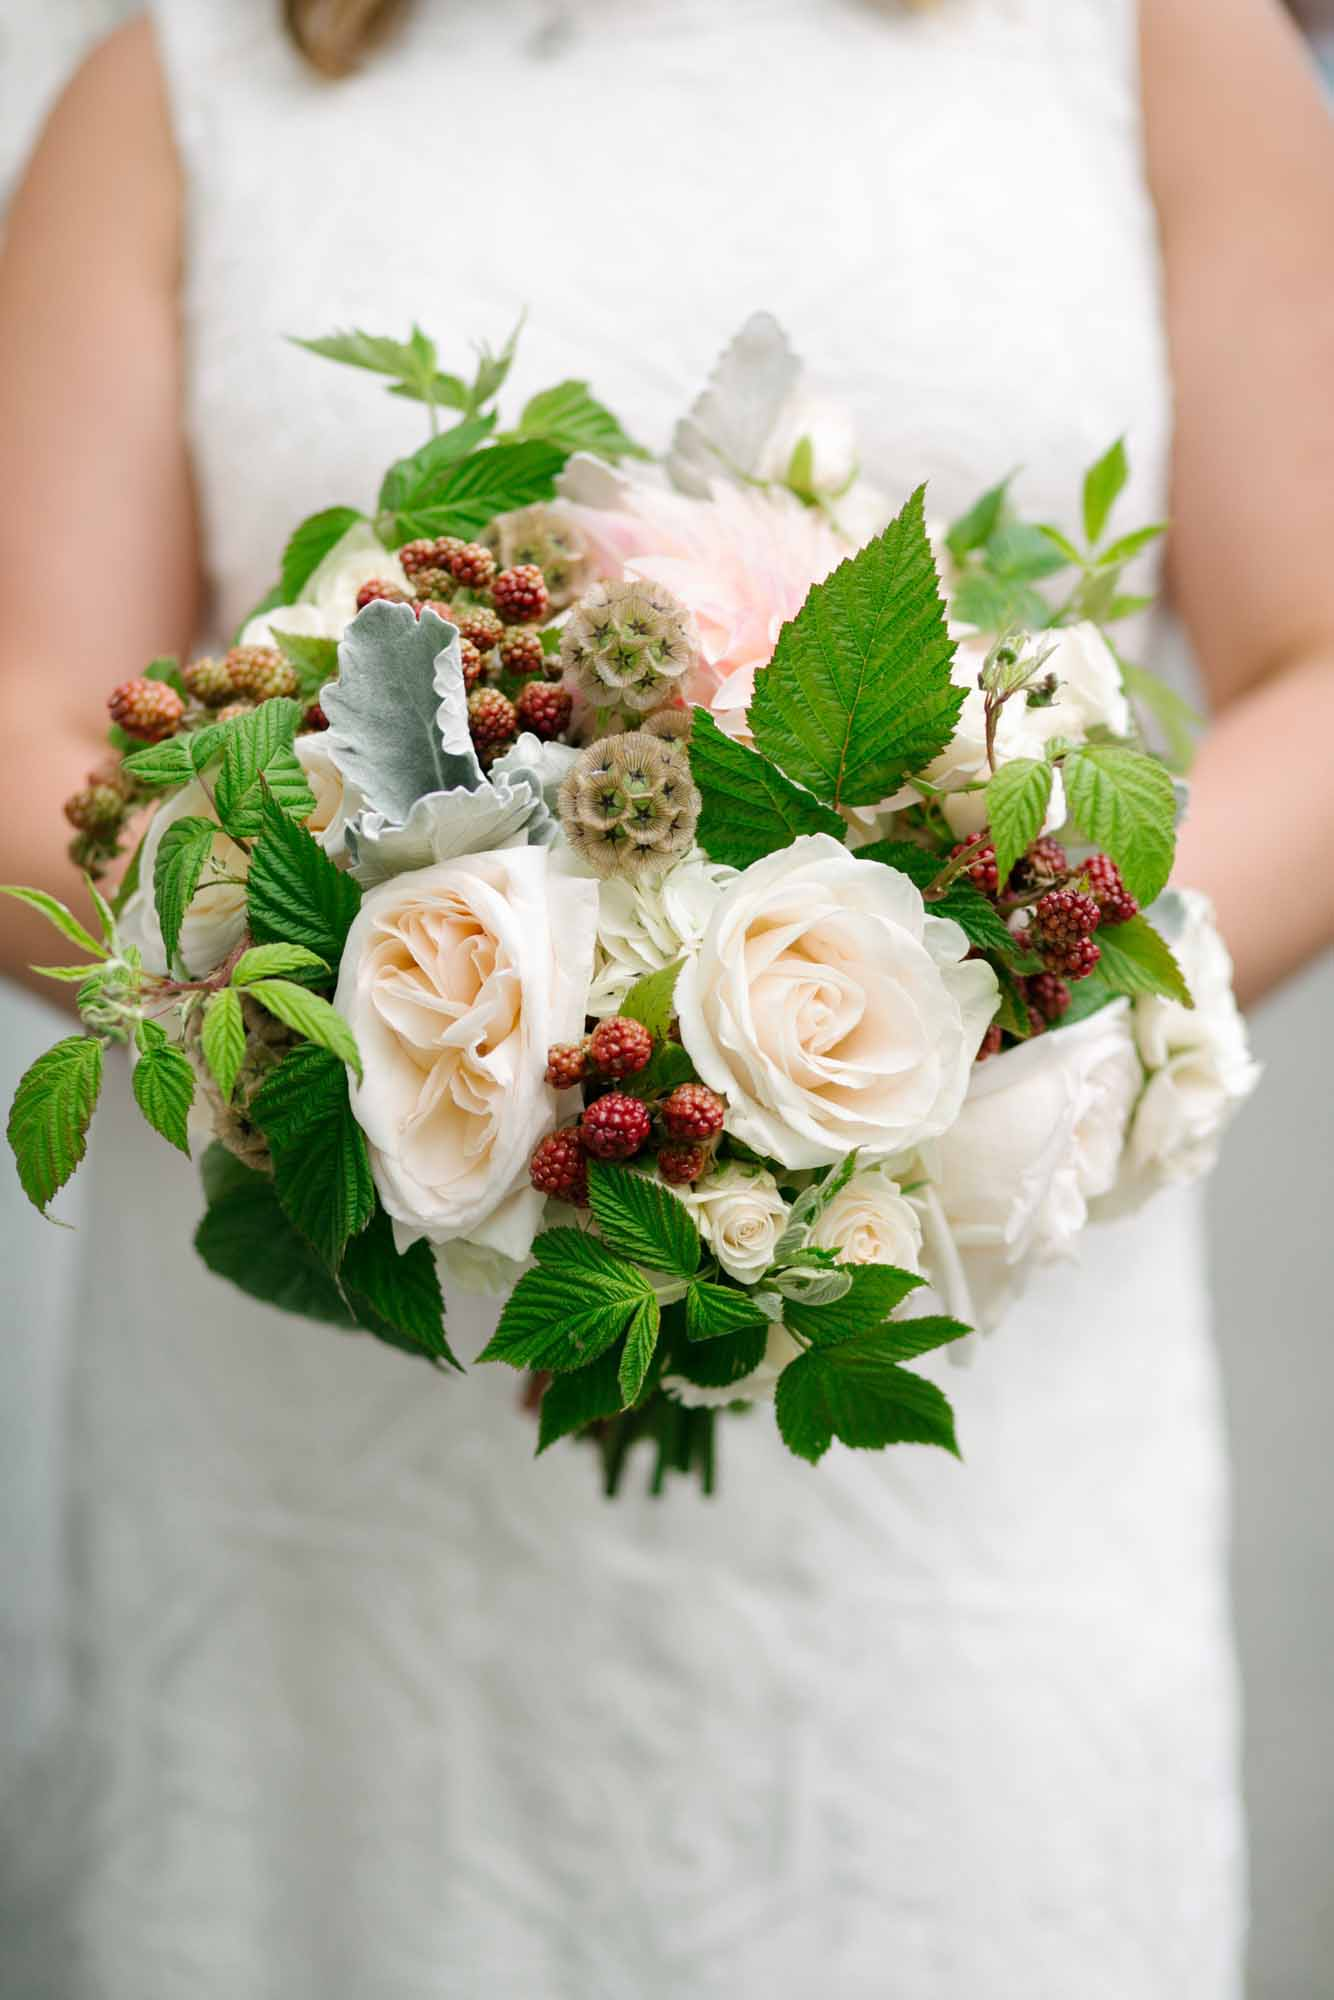 Textured bridal bouquet of ivory roses, scabiosa pods, hypericum berries, raspberry foliage - by Flora Nova Design Seattle